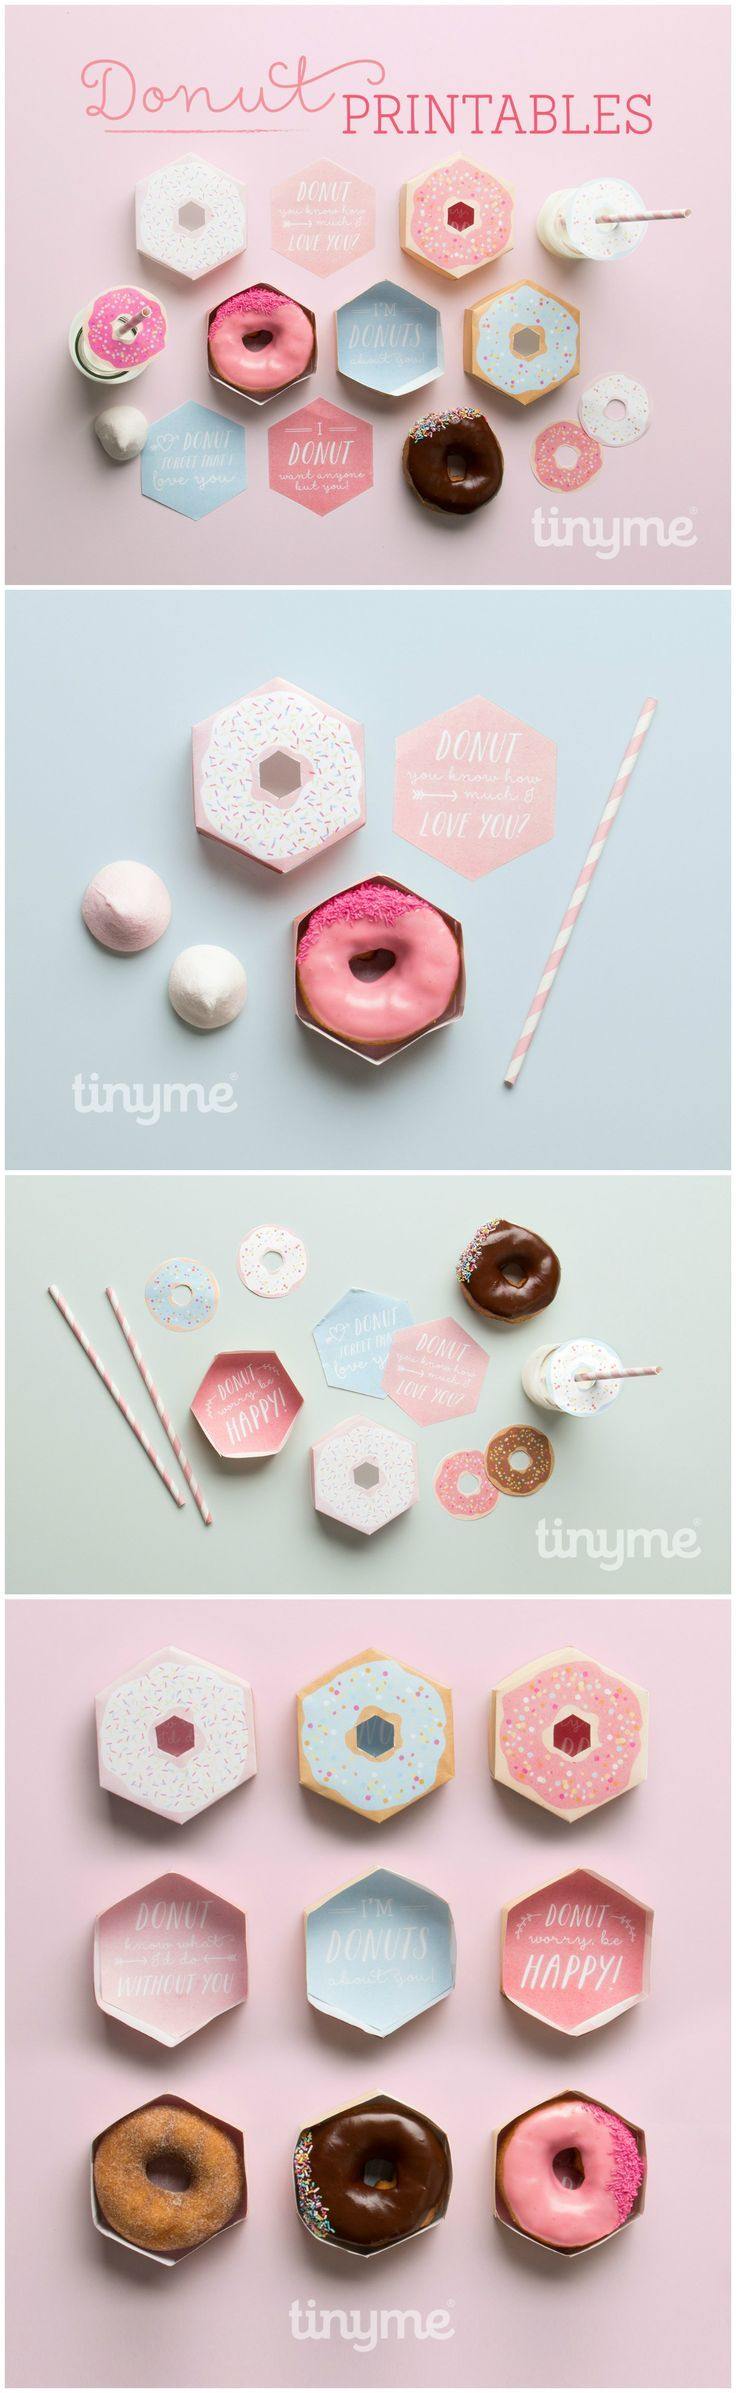 Freebies // Free printable pastel donut/doughnut boxes, straw toppers and sweet messages